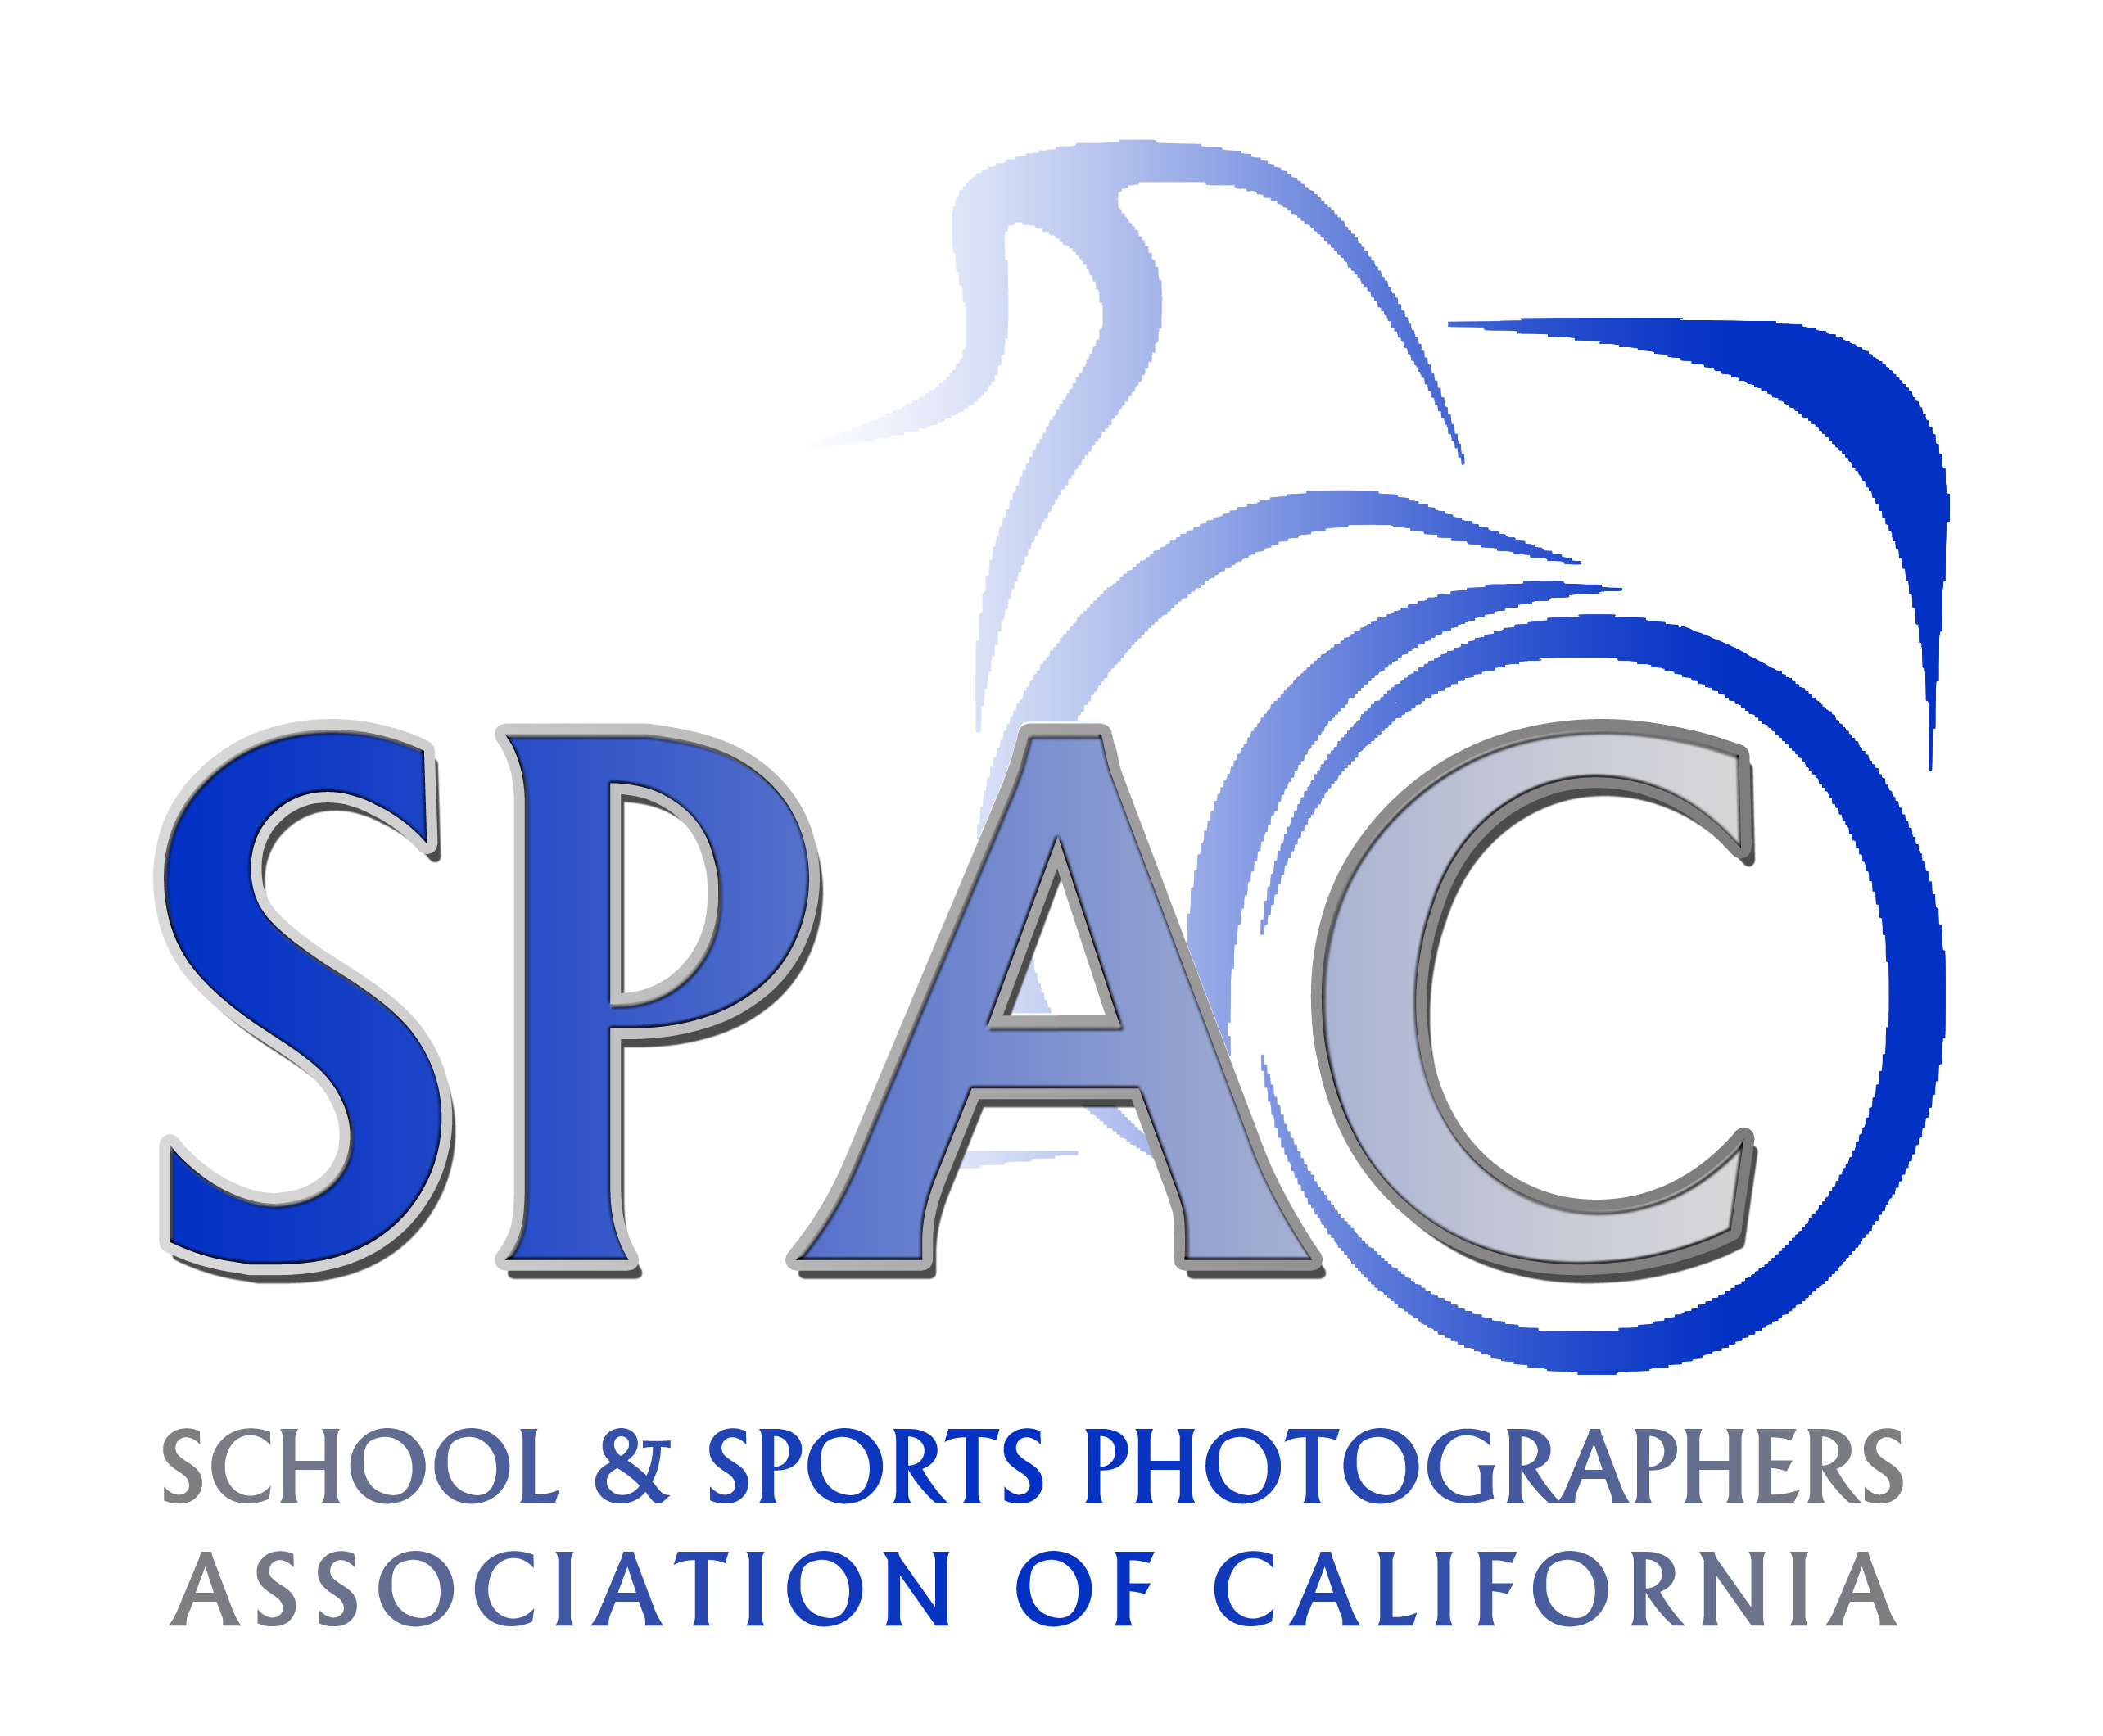 SPAC - School & Sports Photographers Association of California